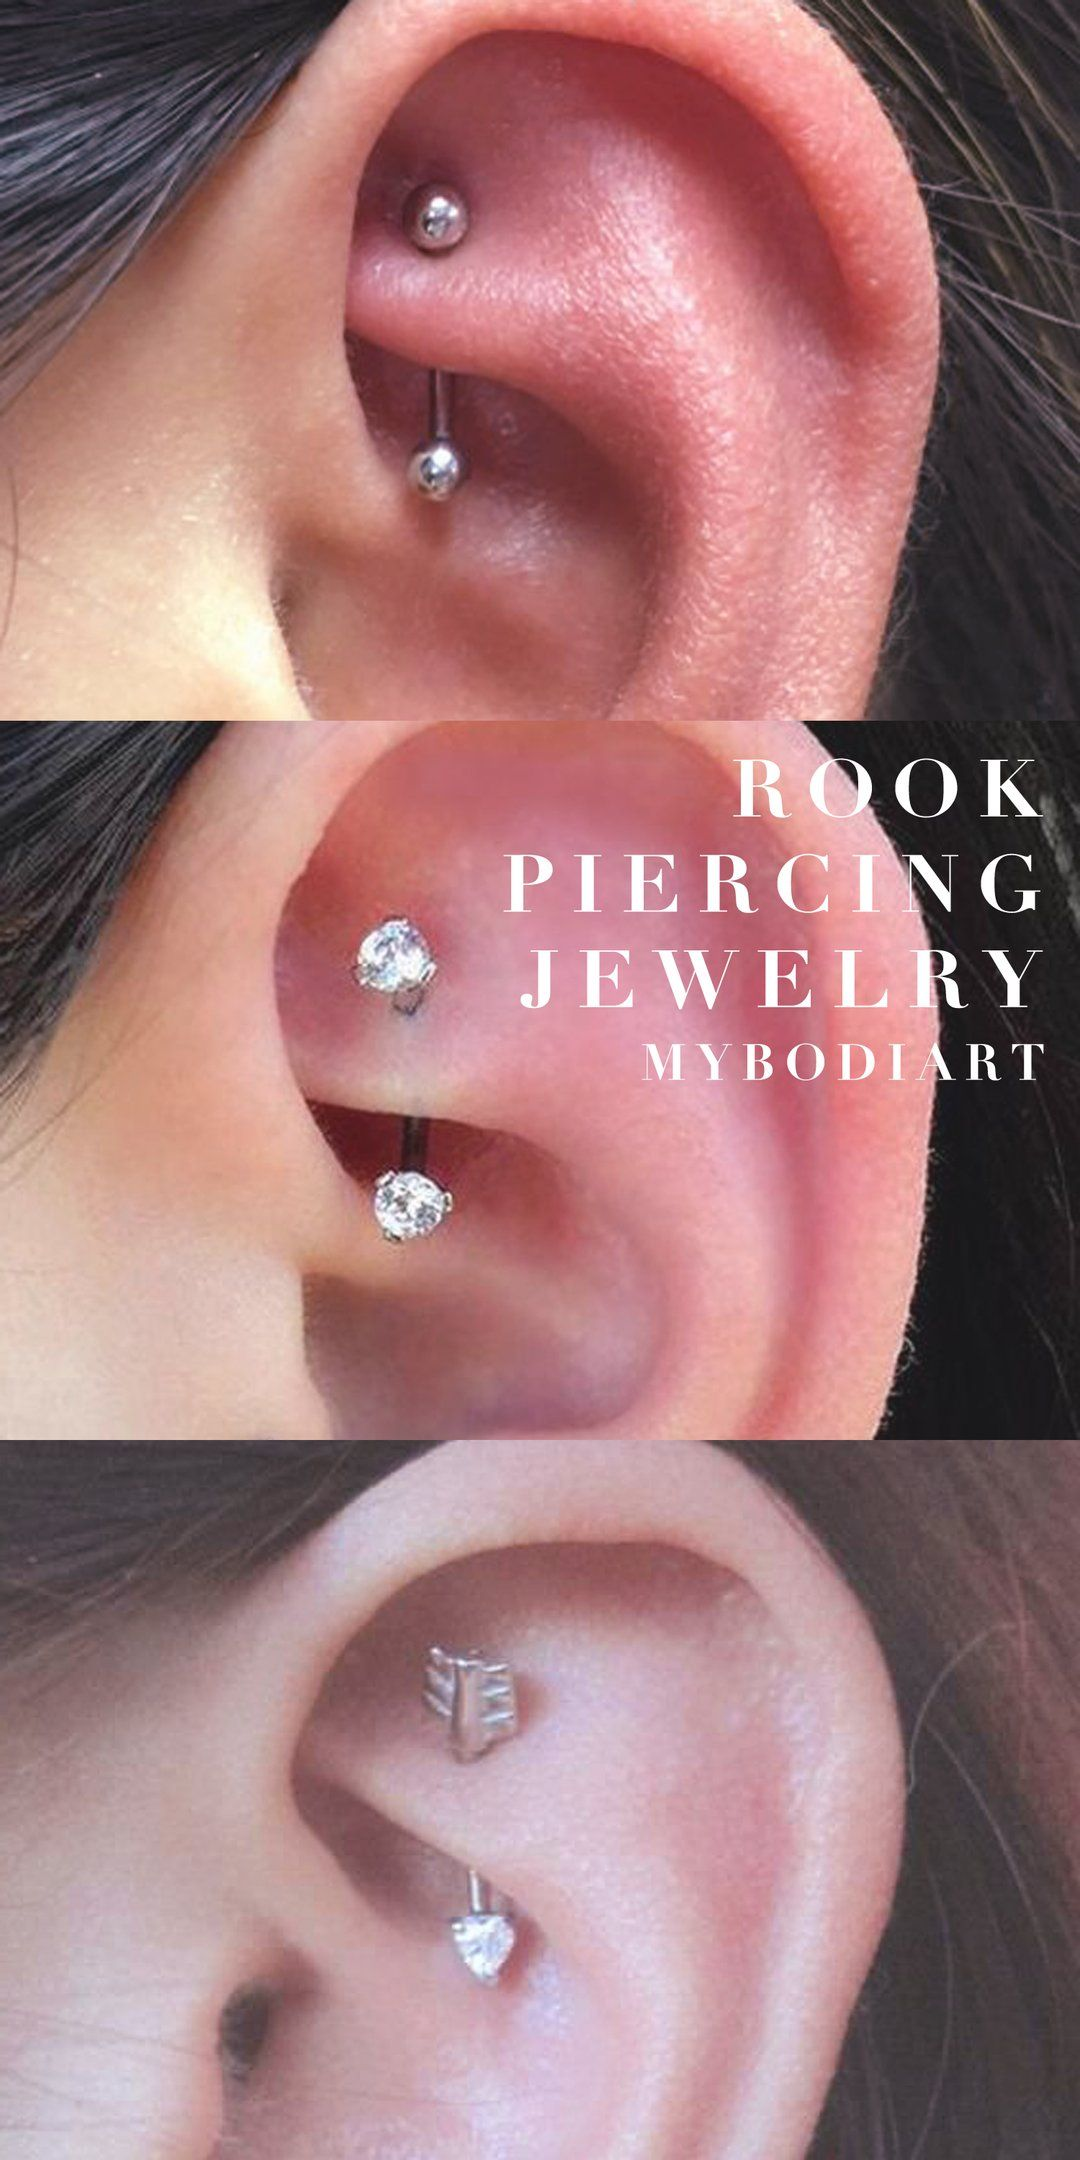 rook barbell Eyebrow Curved Barbell Jewelry cartilage earring 16g Opal eyebrow,Eyebrow ring body piercing jewelry,rook earrings